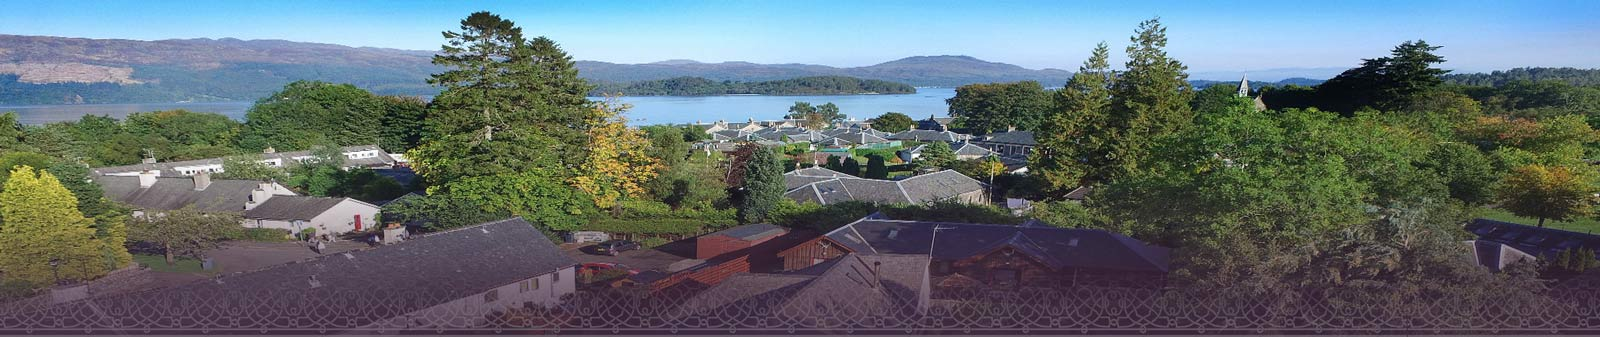 Birds eye view of Luss Town